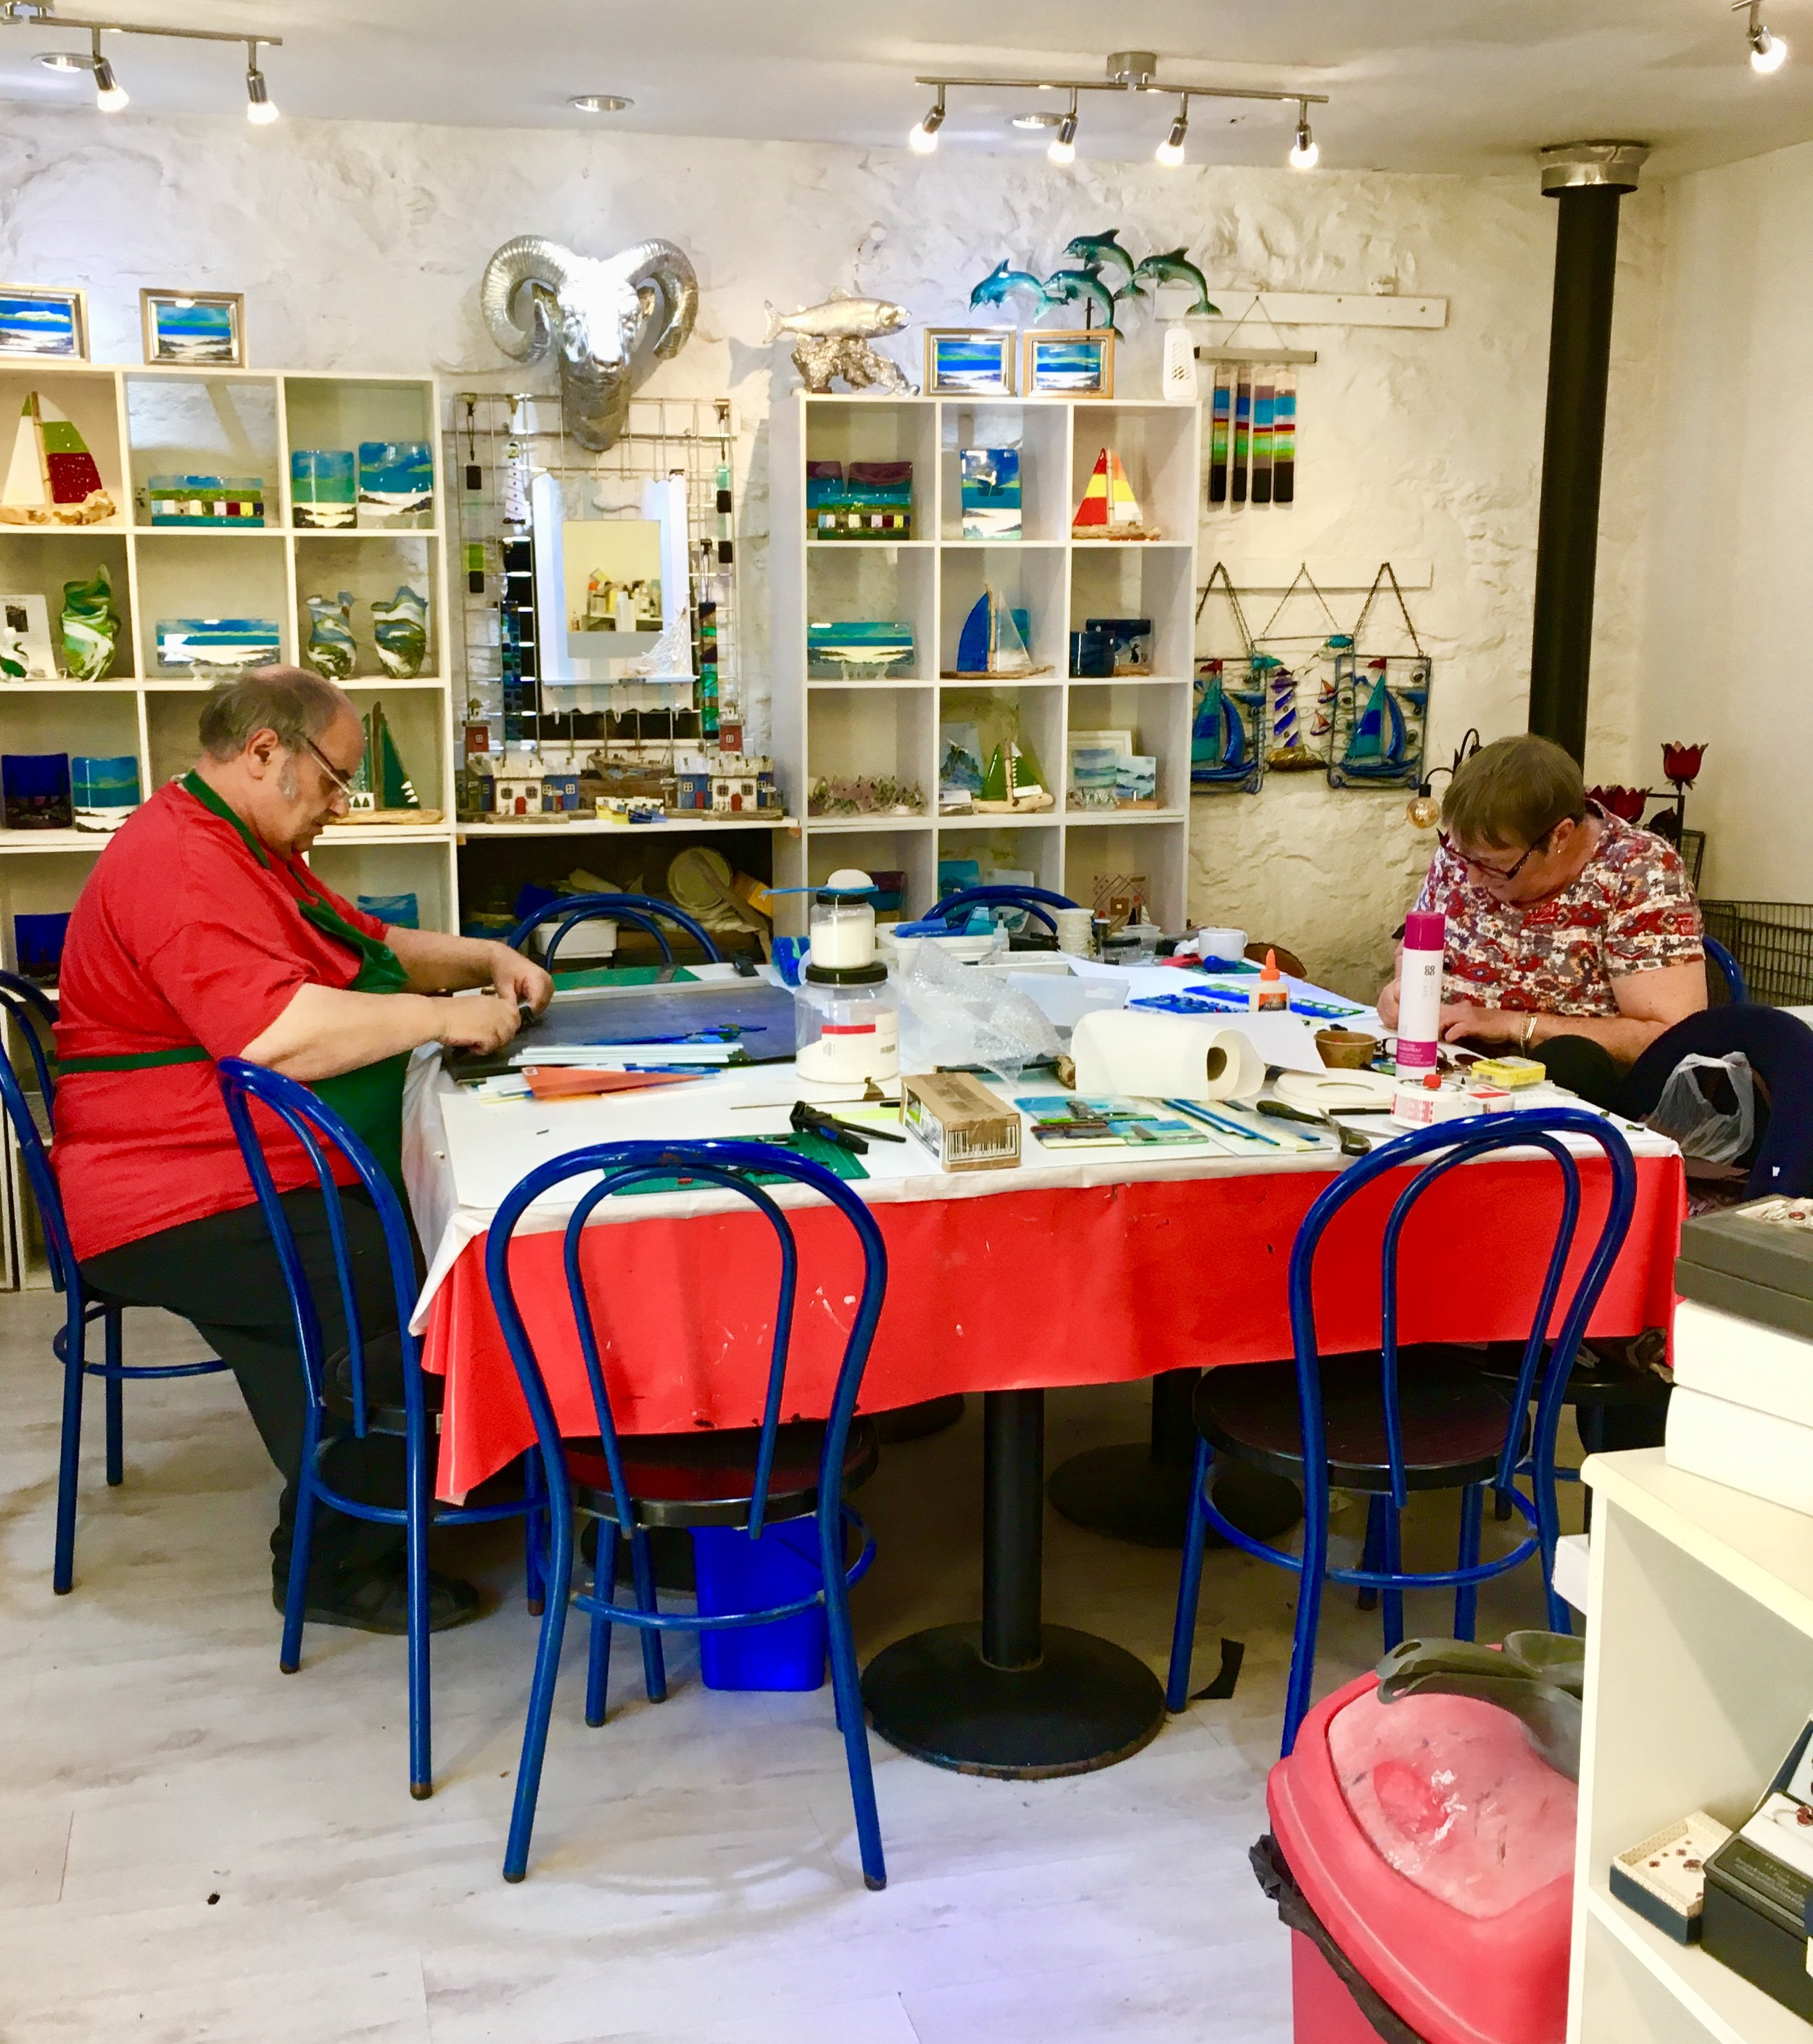 Its typical to see Stuart and Helen hard at work creating their wares.